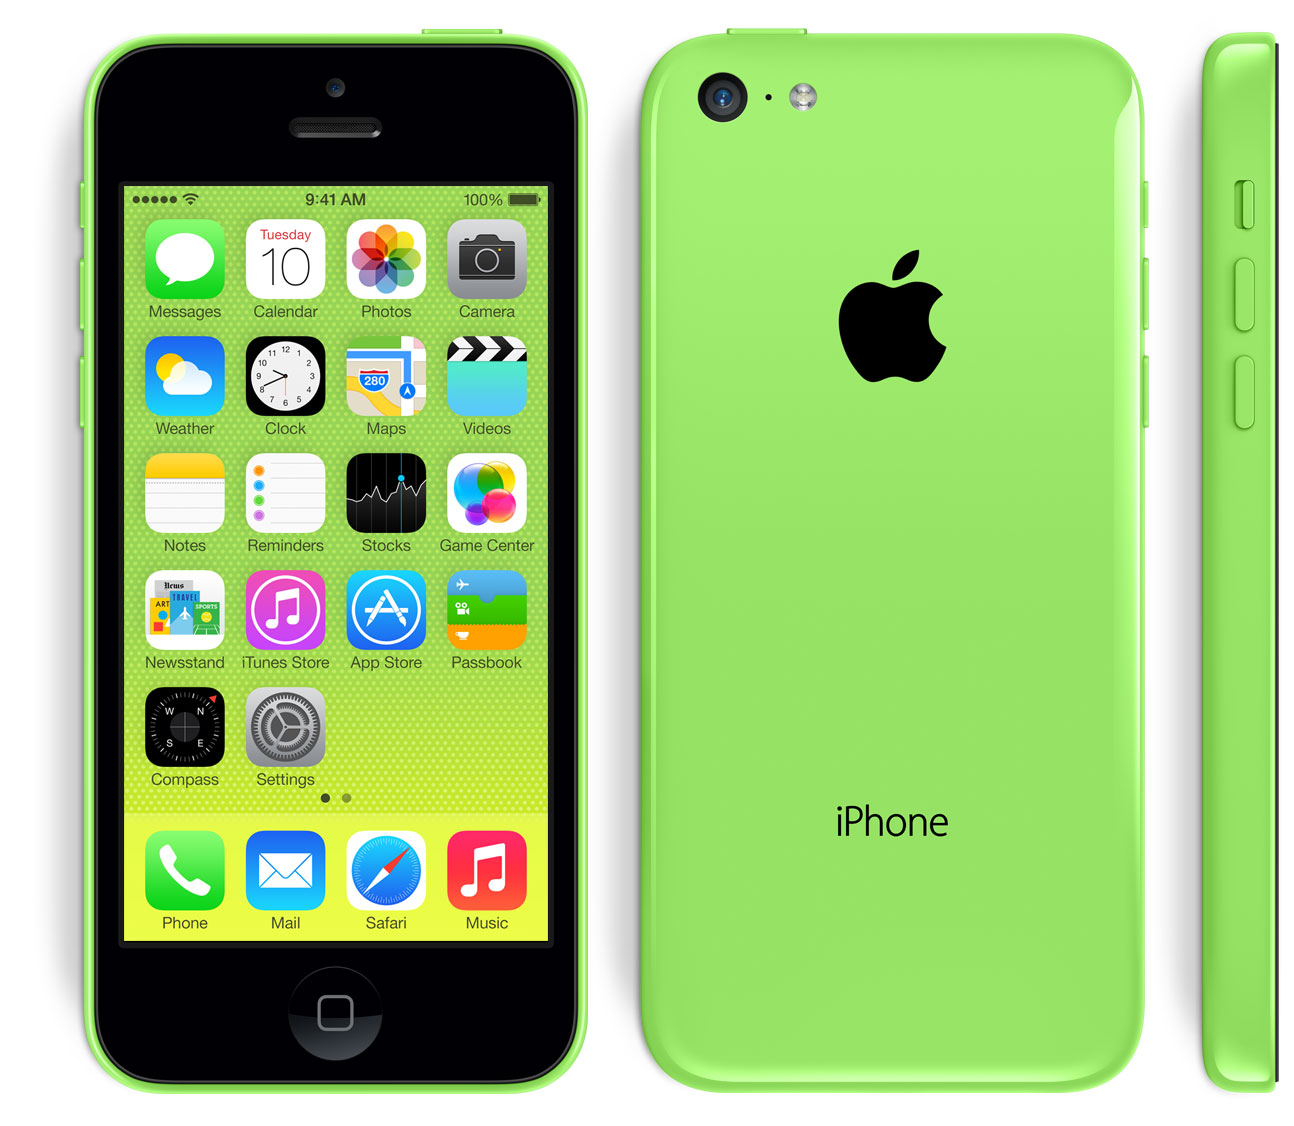 iphone 5 for cheap forget cheap the iphone 5c is clearly the iphone jony 5773